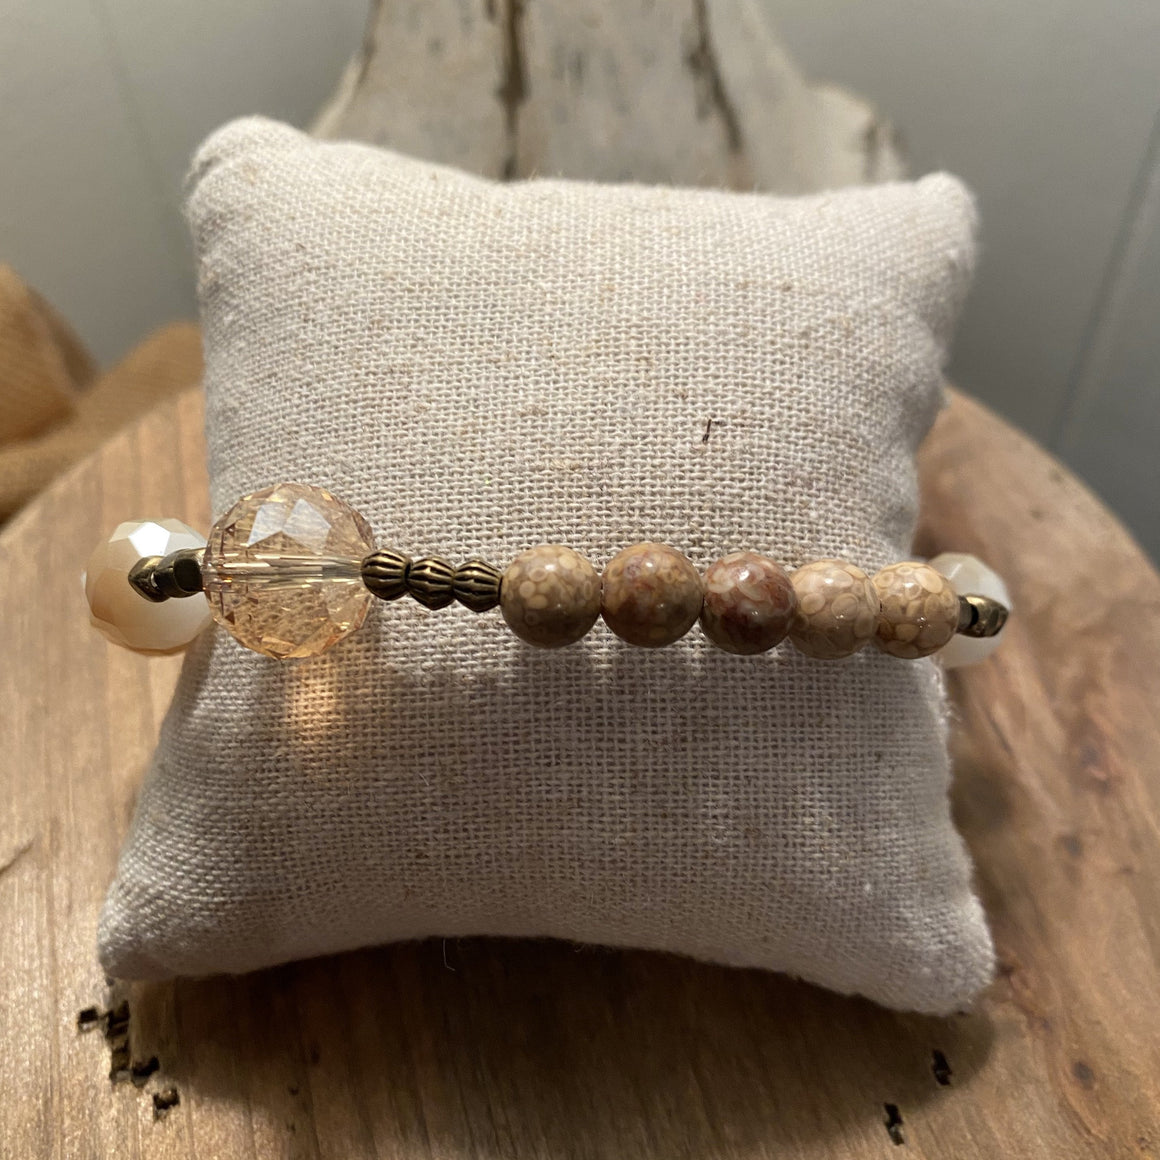 Bracelet with latte colored stones and rustic star charm - J2765